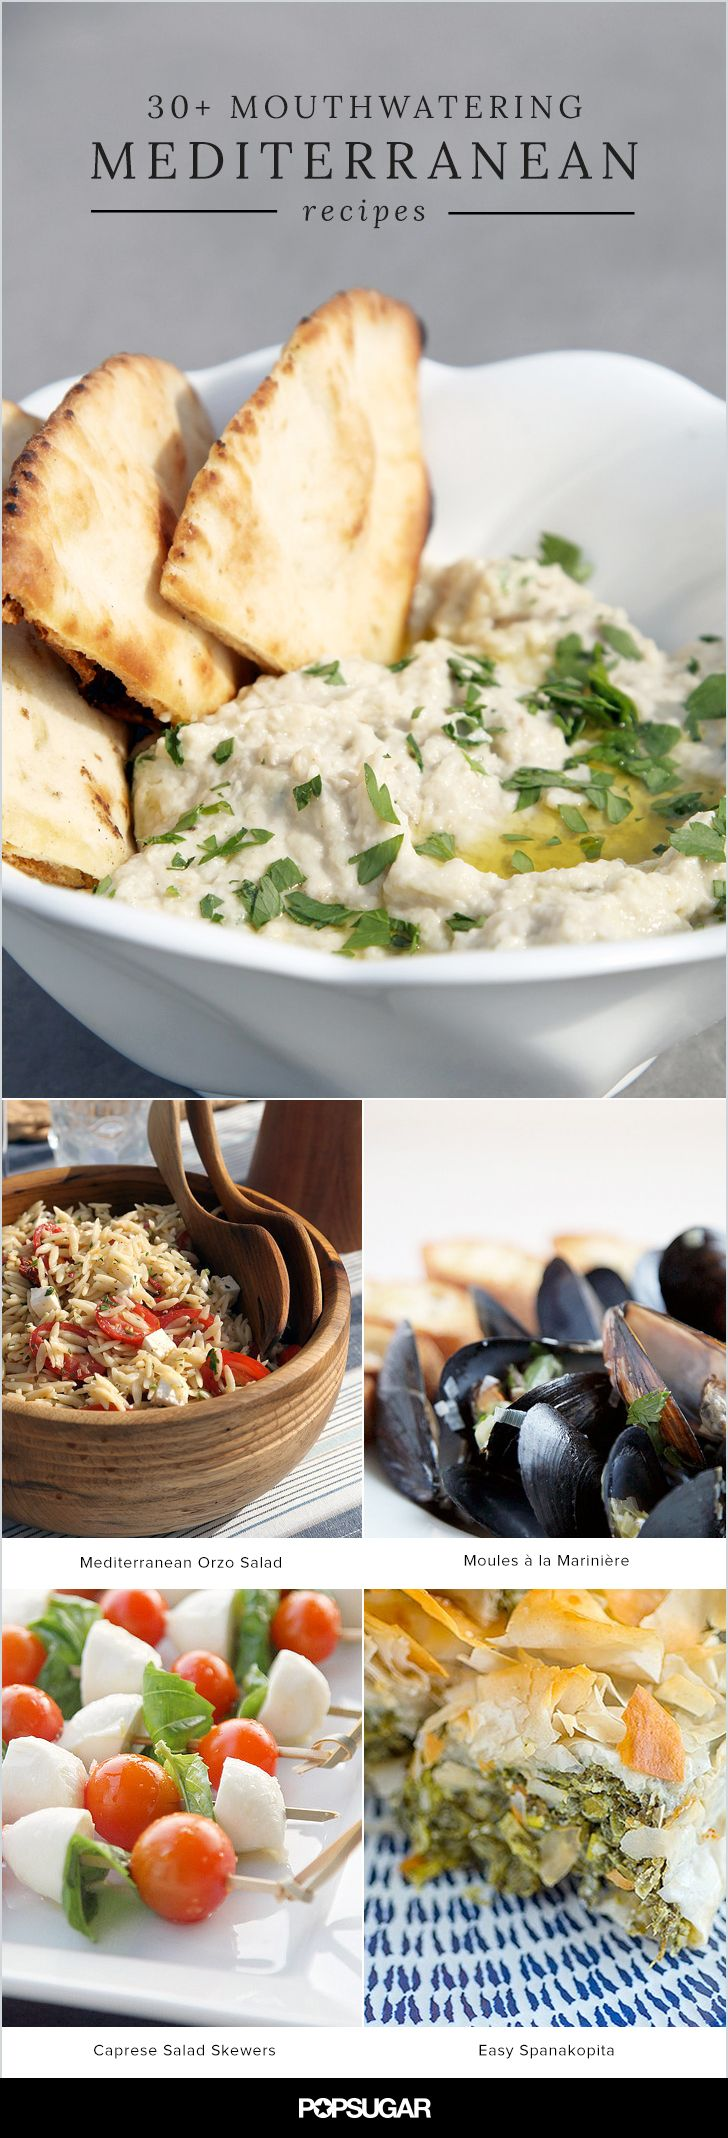 From tzatziki to tahini, here are 37 recipes that will help you master Mediterranean cuisine.